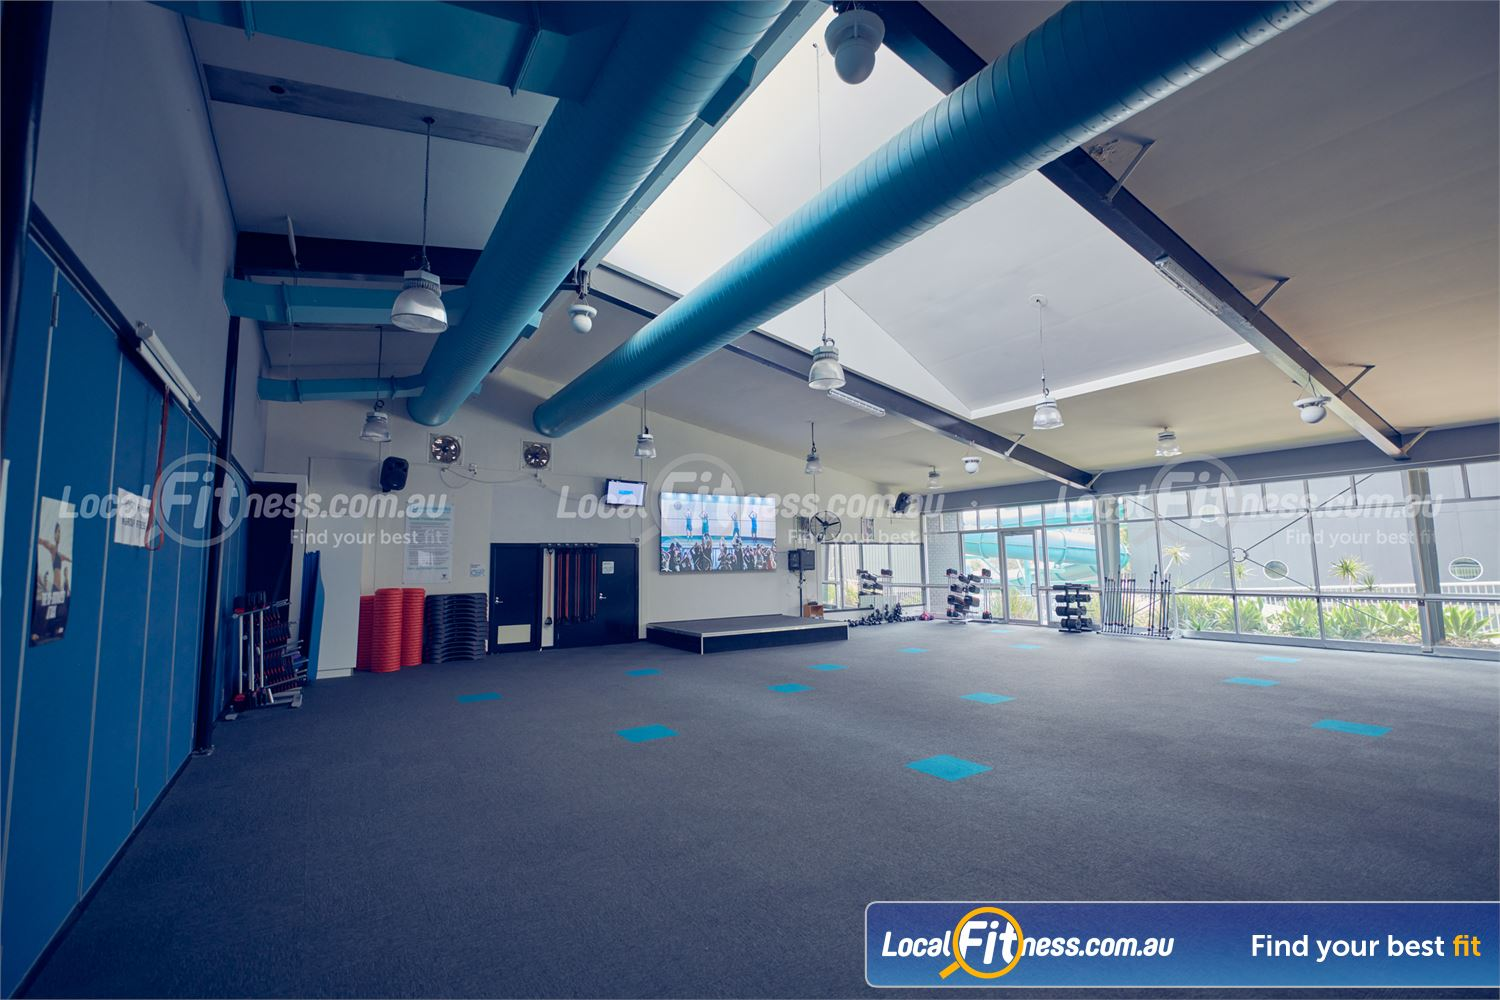 Knox Leisureworks Near Tremont Over 160 classes per week inc. Boronia Yoga, Pilates, Zumba, Les Mills and more.